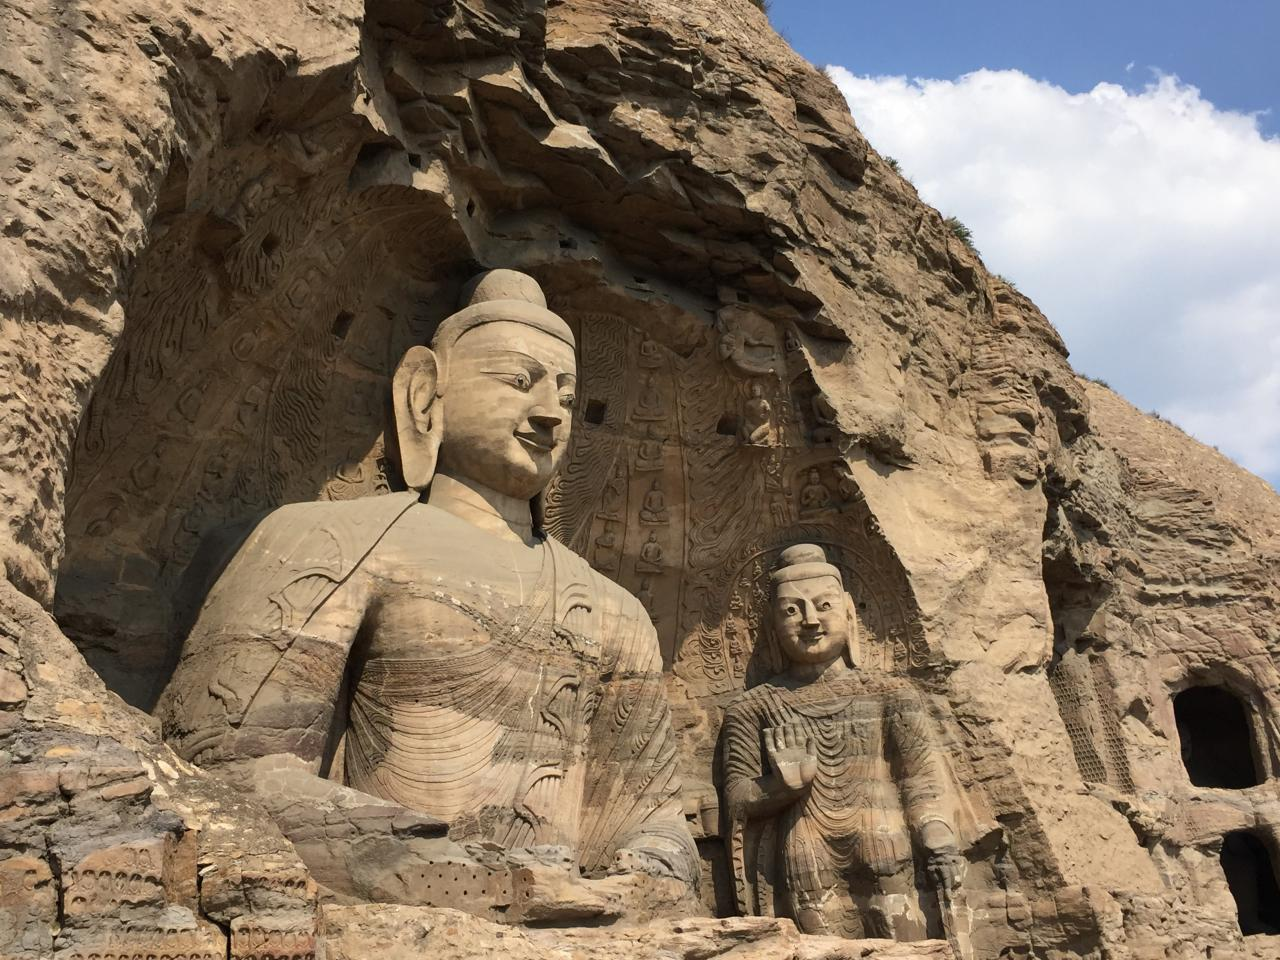 Just about 4 hours drive from Beijing is Datong, a historic city, which used to be the capital for 3 Chinese dynasties. Even thou it is located in the...